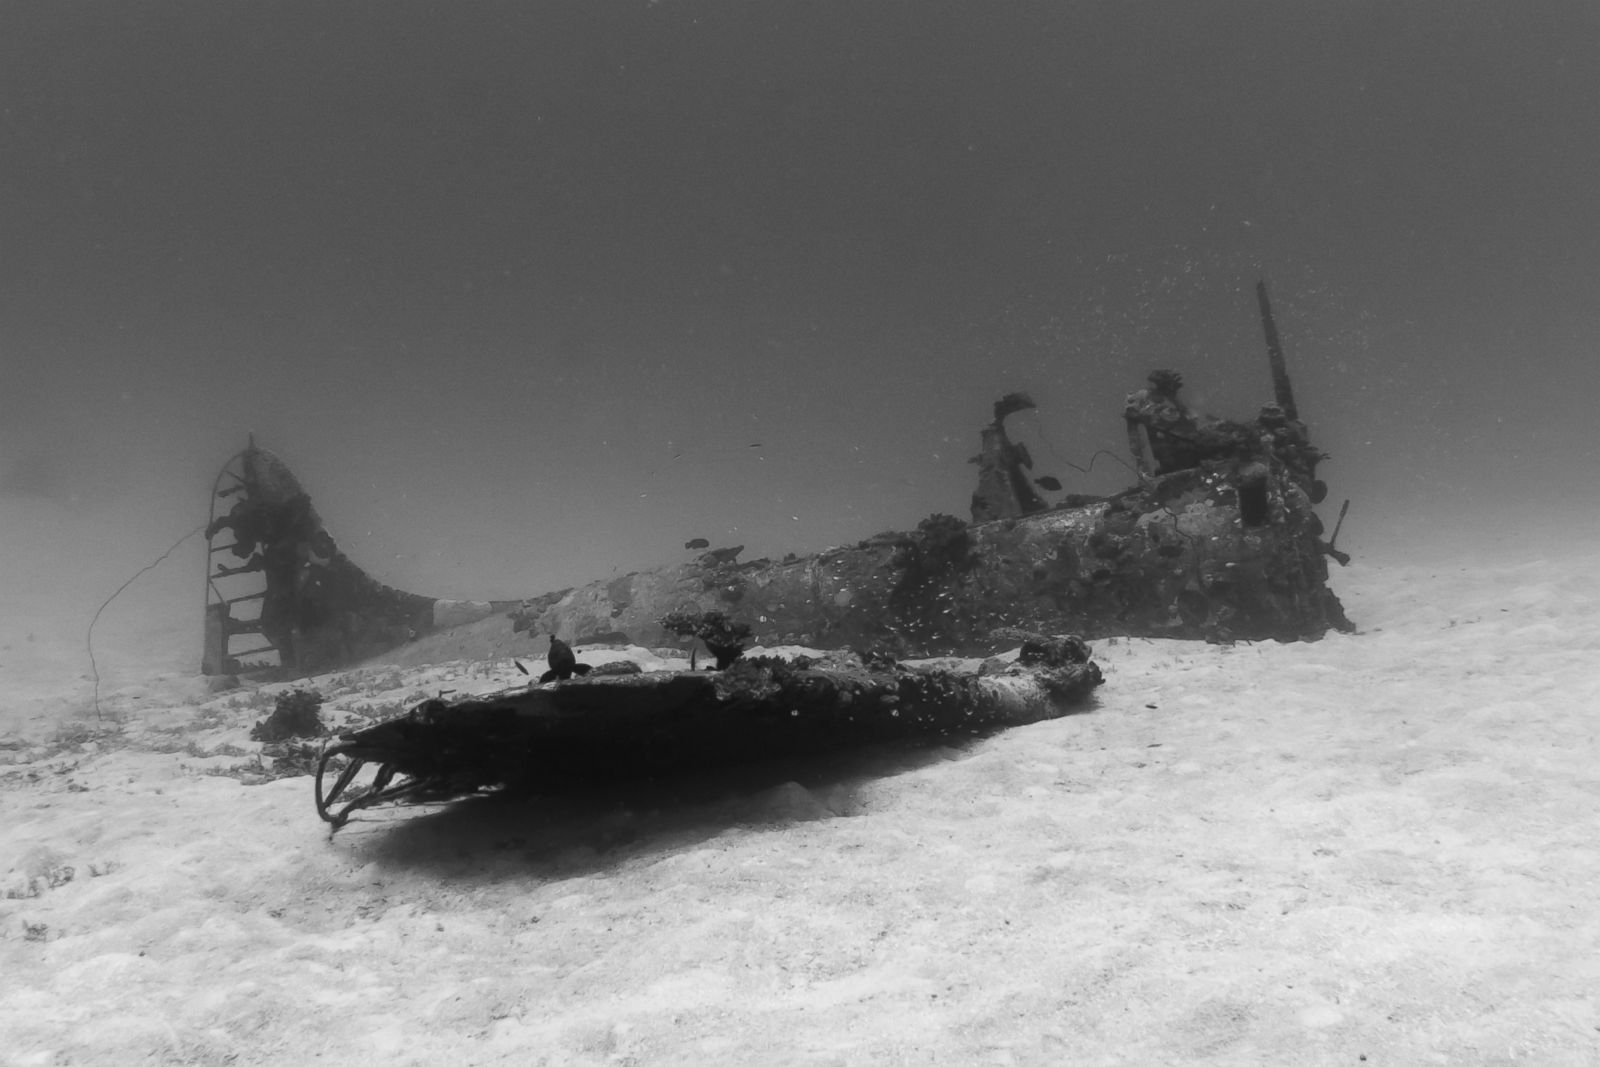 SectionsShowsABC News Network  |  © 2019 ABC News Internet Ventures. All rights reserved.Sunken World War II Allied Aircraft